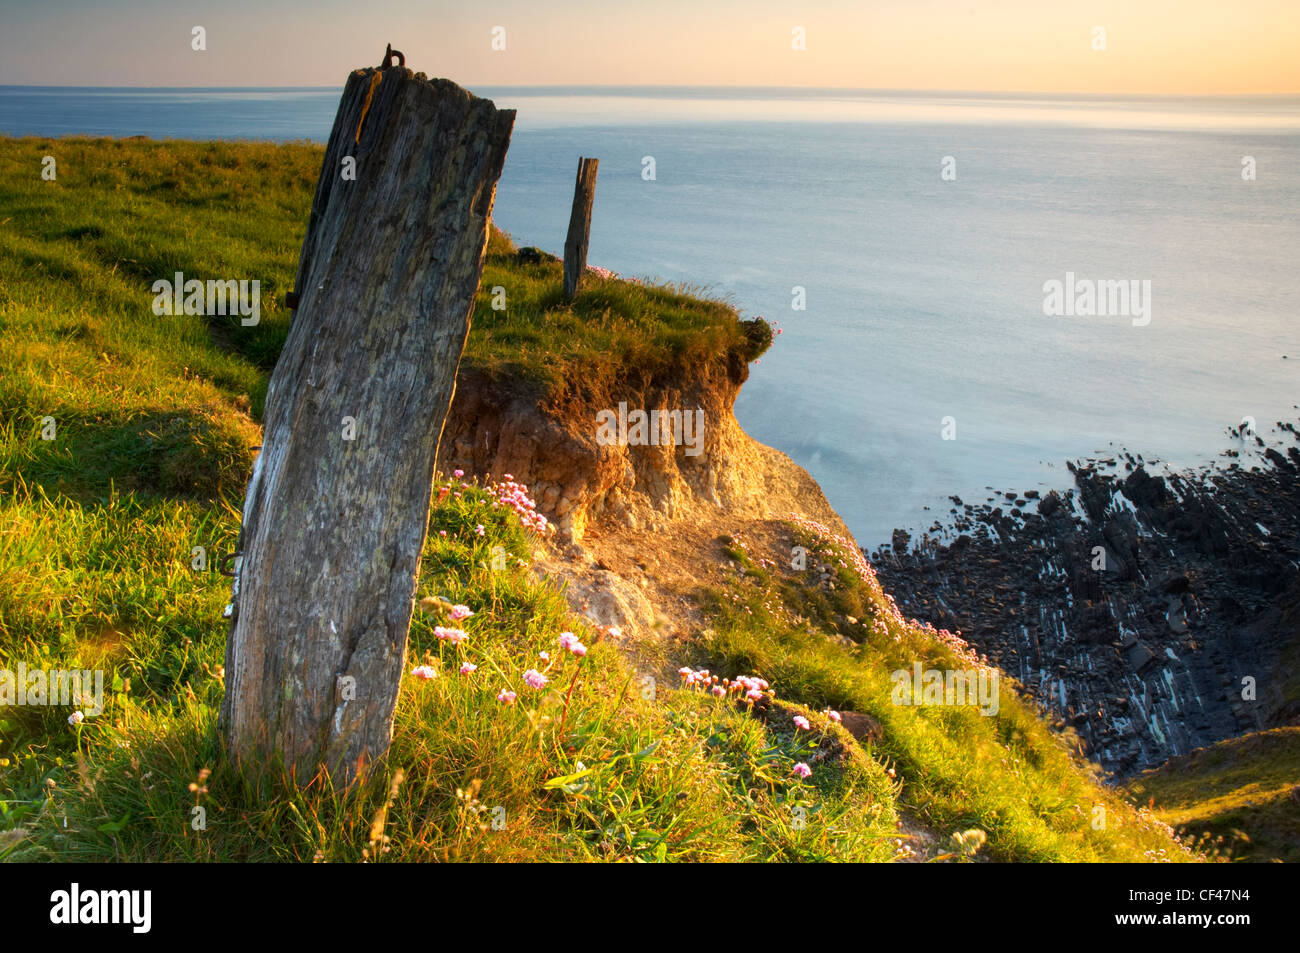 Old wooden posts in low evening light on the fragile clifftop at Upright cliff at Hartland Point in North Devon. - Stock Image